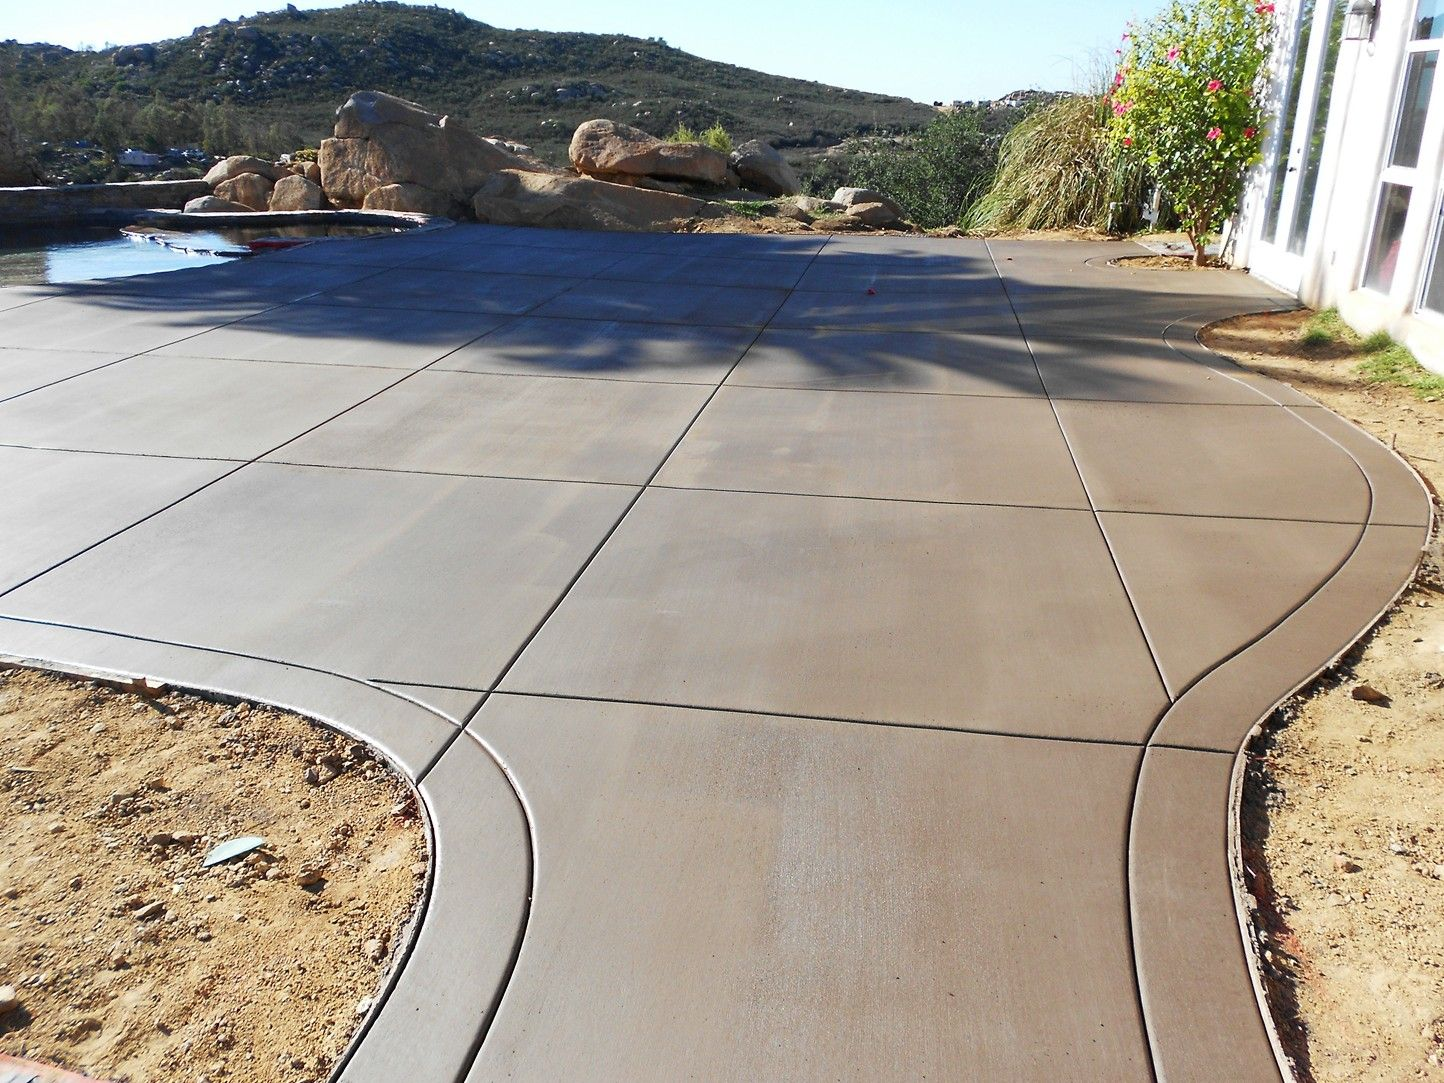 "Our Mission - We at San-Co Concrete, LLC will try very hard to ensure that for many years to come, you will have a long lasting, high quality concrete flat work inside and around your home. Whether it is your driveway, front porch, sidewalk, patio, garage or basement floor, we will do everything we can to satisfy you as a customer. All of our employees are trained to prepare, set up and place and finish concrete to the highest of industry standards. We work hard to keep up to date on the latest products and techniques as well as work with our suppliers and concrete producers to provide you with the highest quality materials. We offer several types of finishes. The most common that you see are exposed aggregate (with either 3/8"" rock or 3/4"" rock or a combo) and broom finishes. We also have a wide variety of stamped finish patterns in several different colors. Our signature finish is an acid etched/sand finish. This can be done with plain concrete or with some color added to it. Either way it is a nice option to consider. If you would like more information about our services please feel free to contact our friendly staff members at our office. Thank you for the opportunity to work with you, and for choosing our company for your concrete needs. We hope you are completely satisfied and that you may recommend us to your family and friends!San-Co Concrete, LLC."